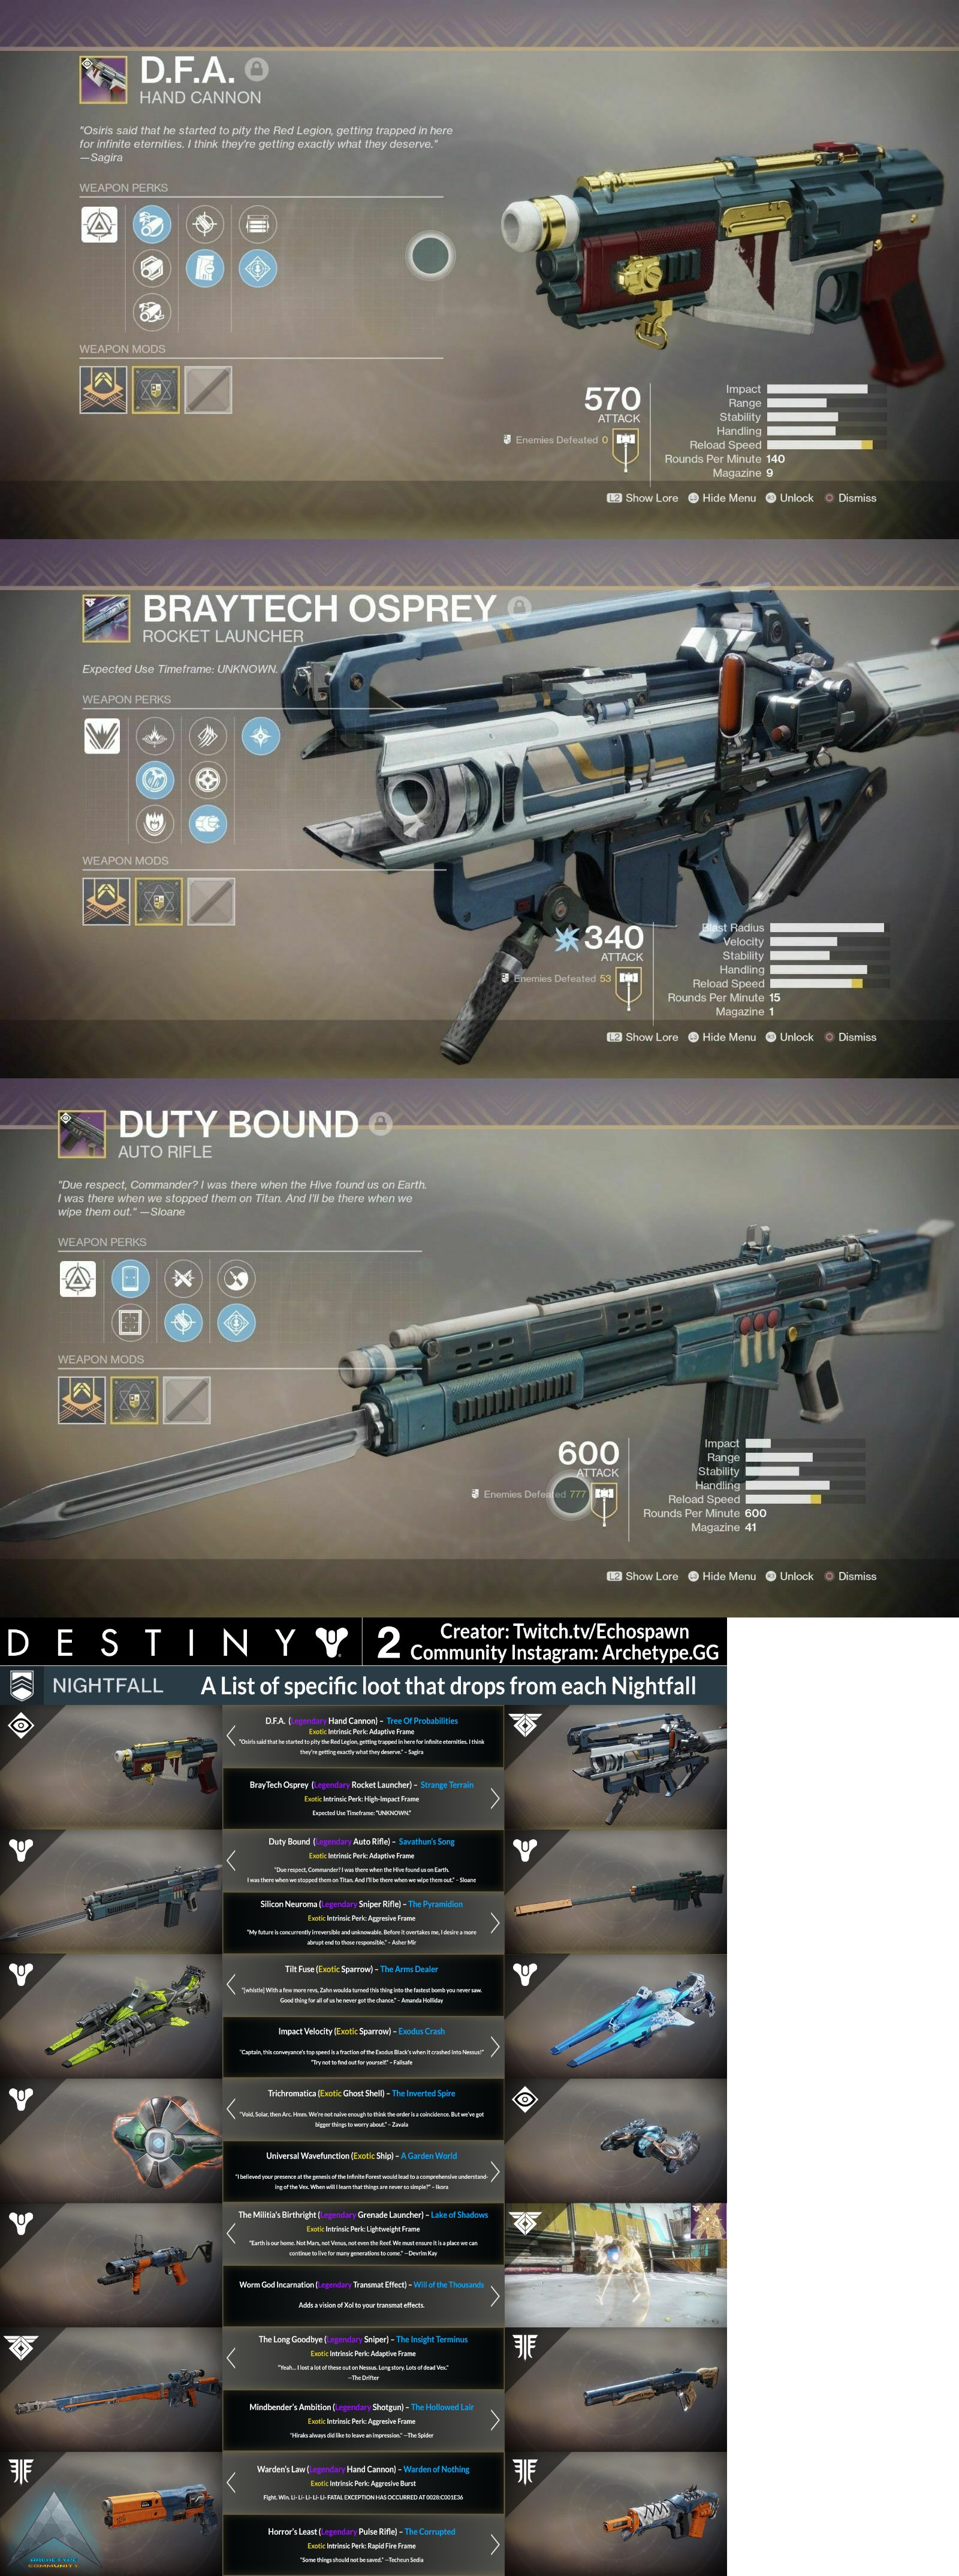 Strategy Guides and Cheats 156595: Destiny 2 Nightfall Specific Loot